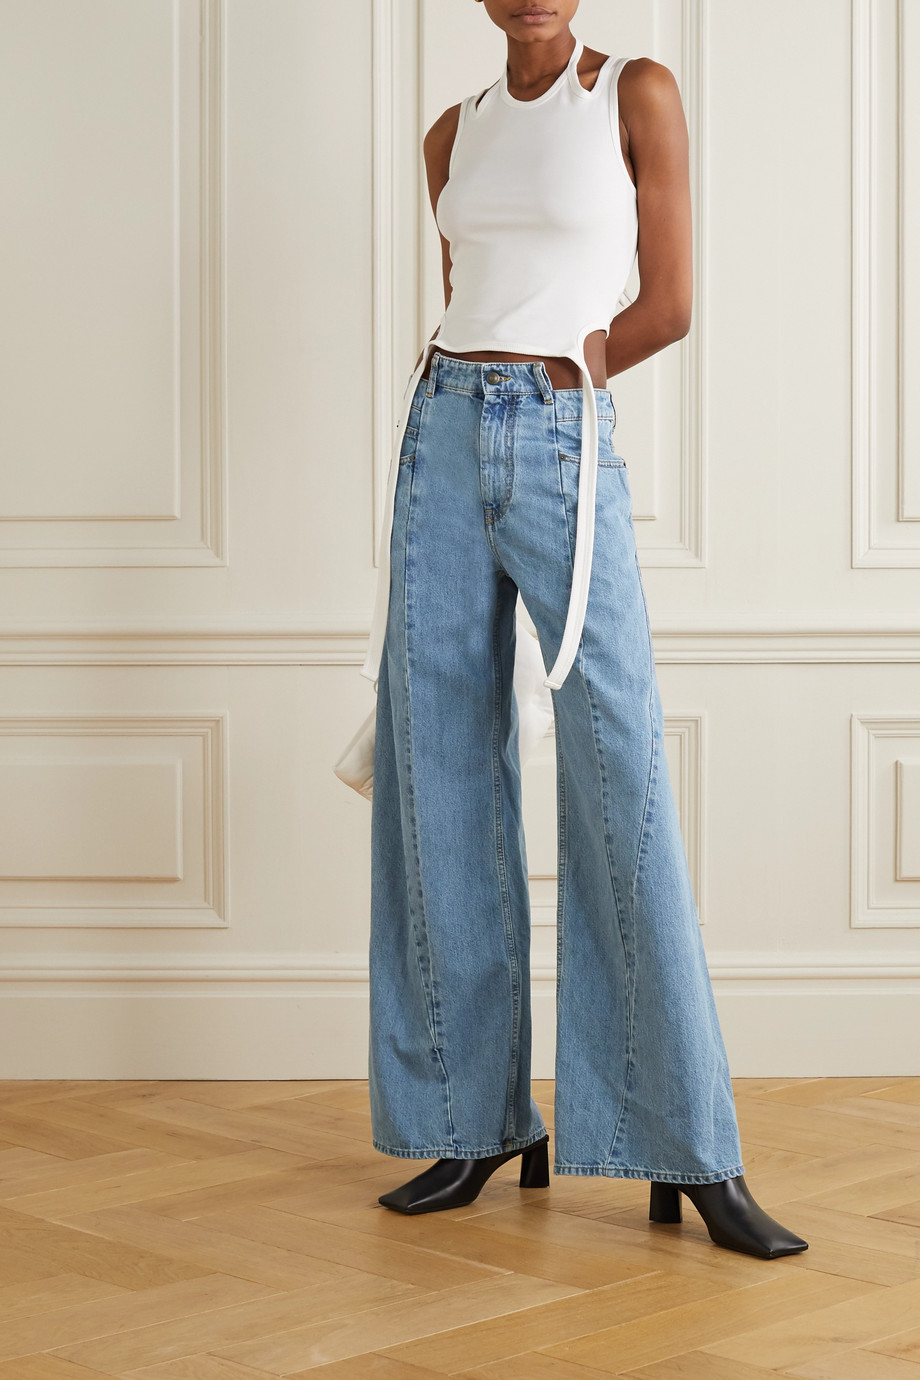 Maison Margiela Décortiqué paneled high-rise wide-leg jeans